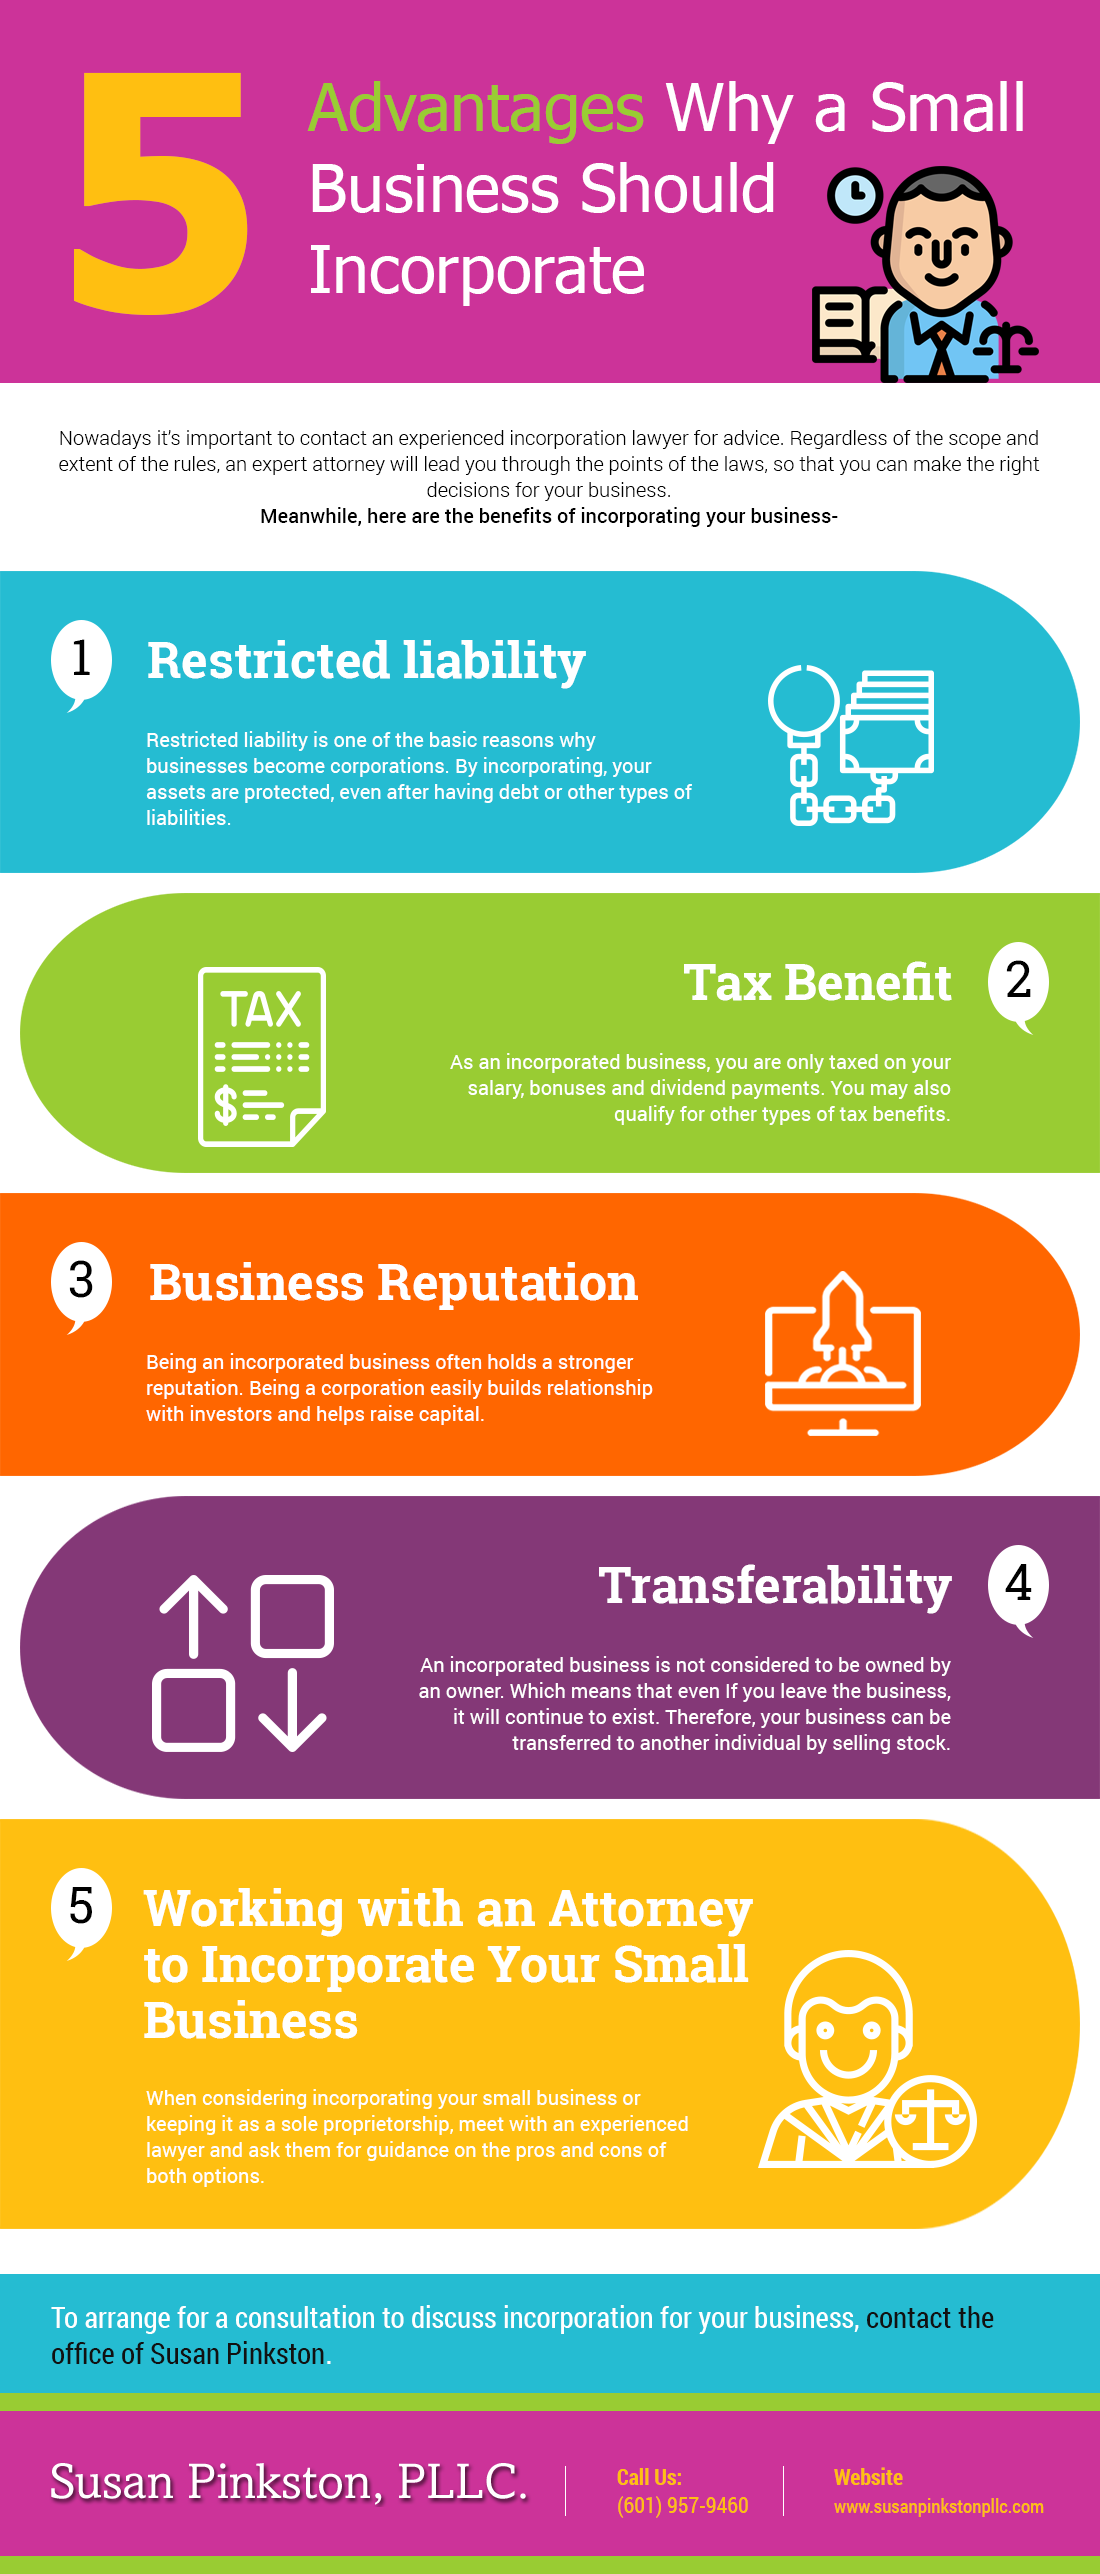 what are the advantages of incorporating a business